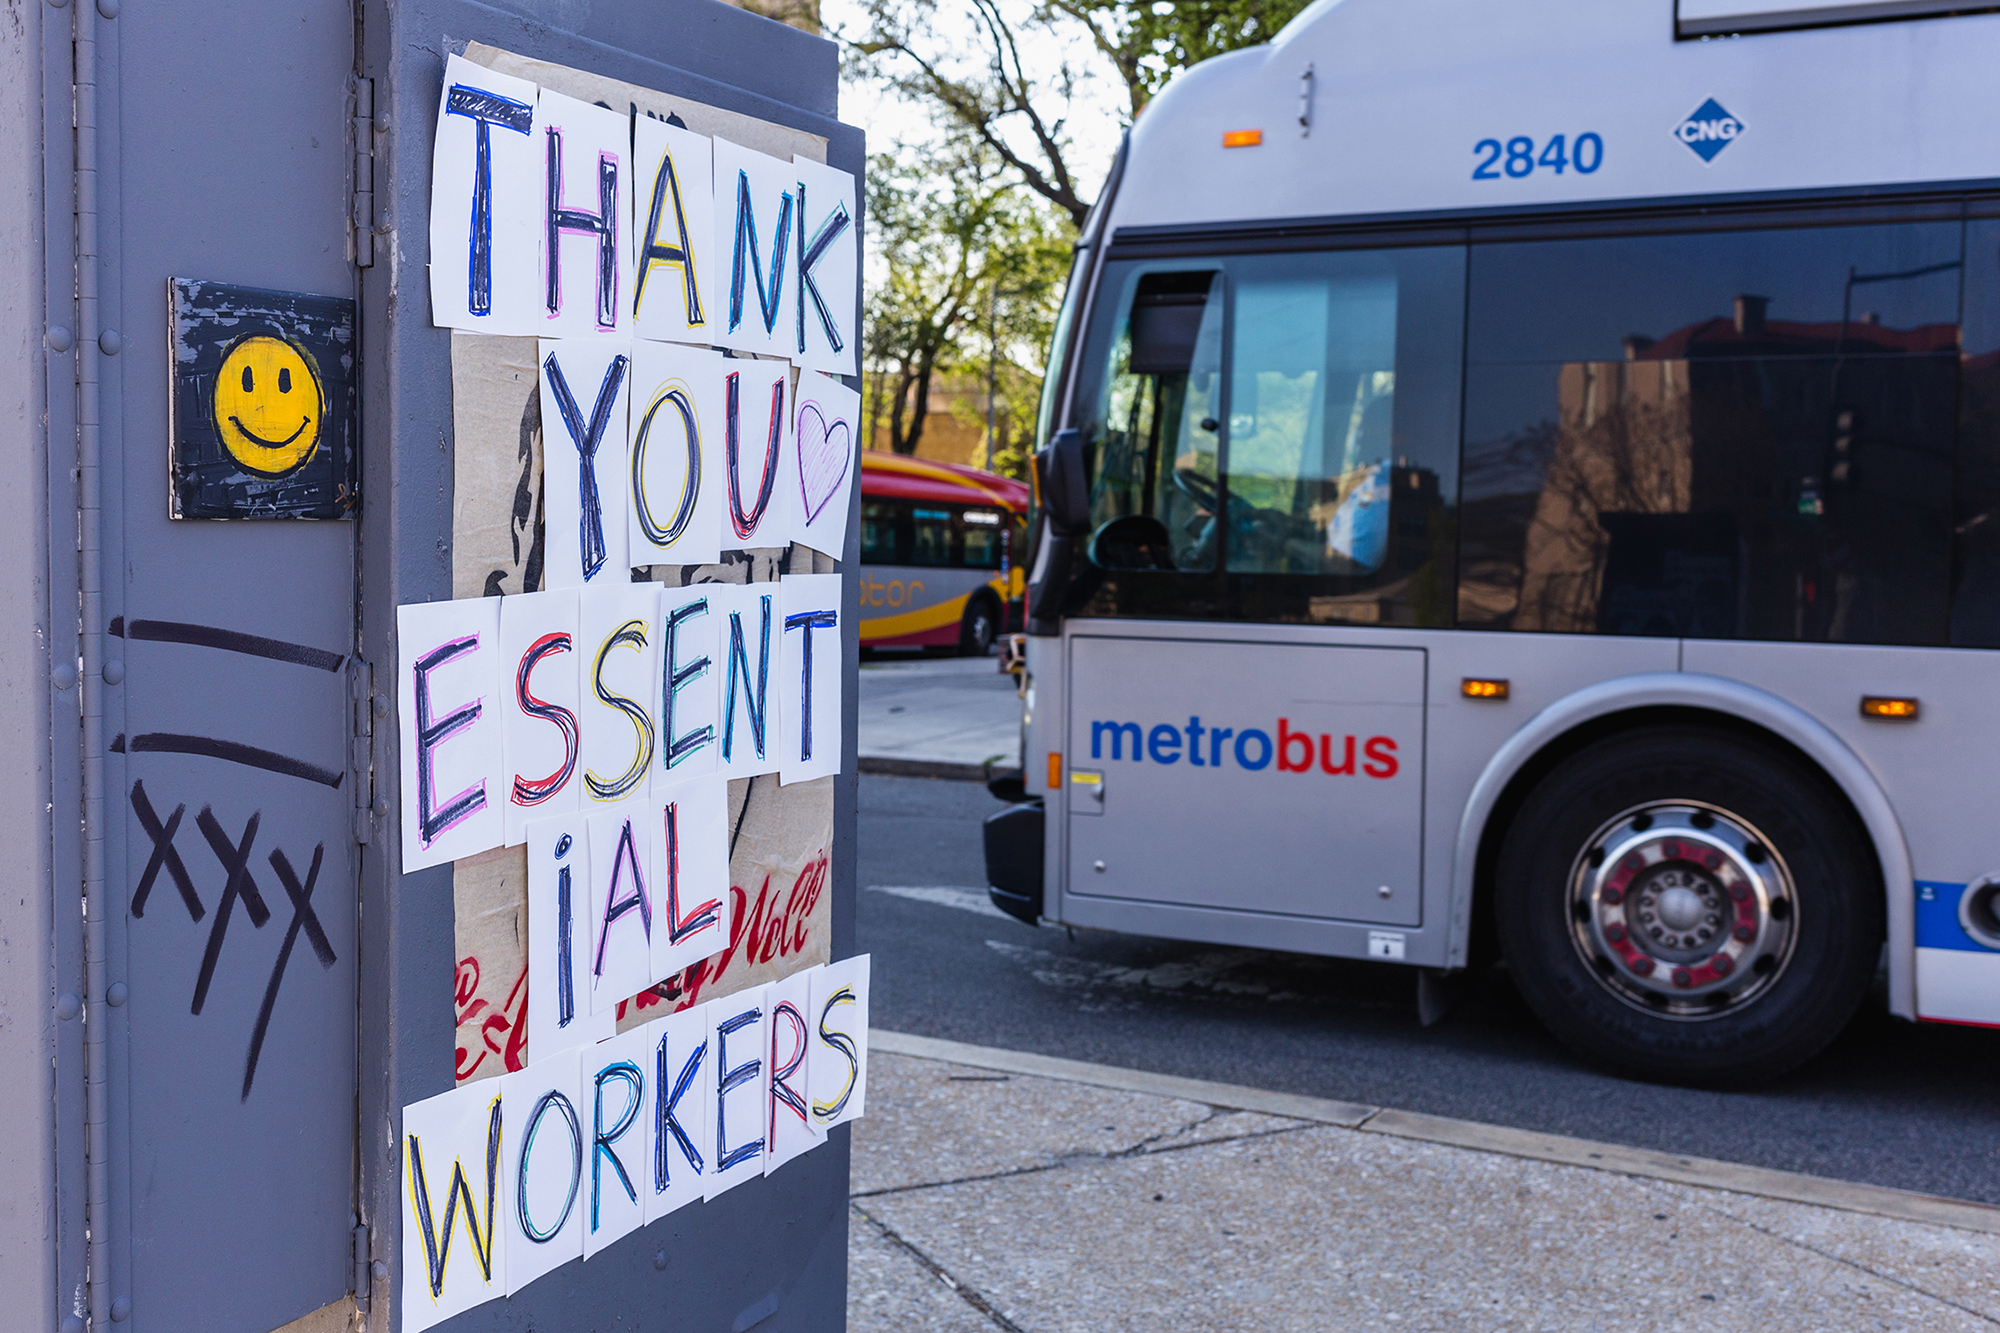 People Are Making Thank-You Signs for Grocery Workers and Delivery Drivers